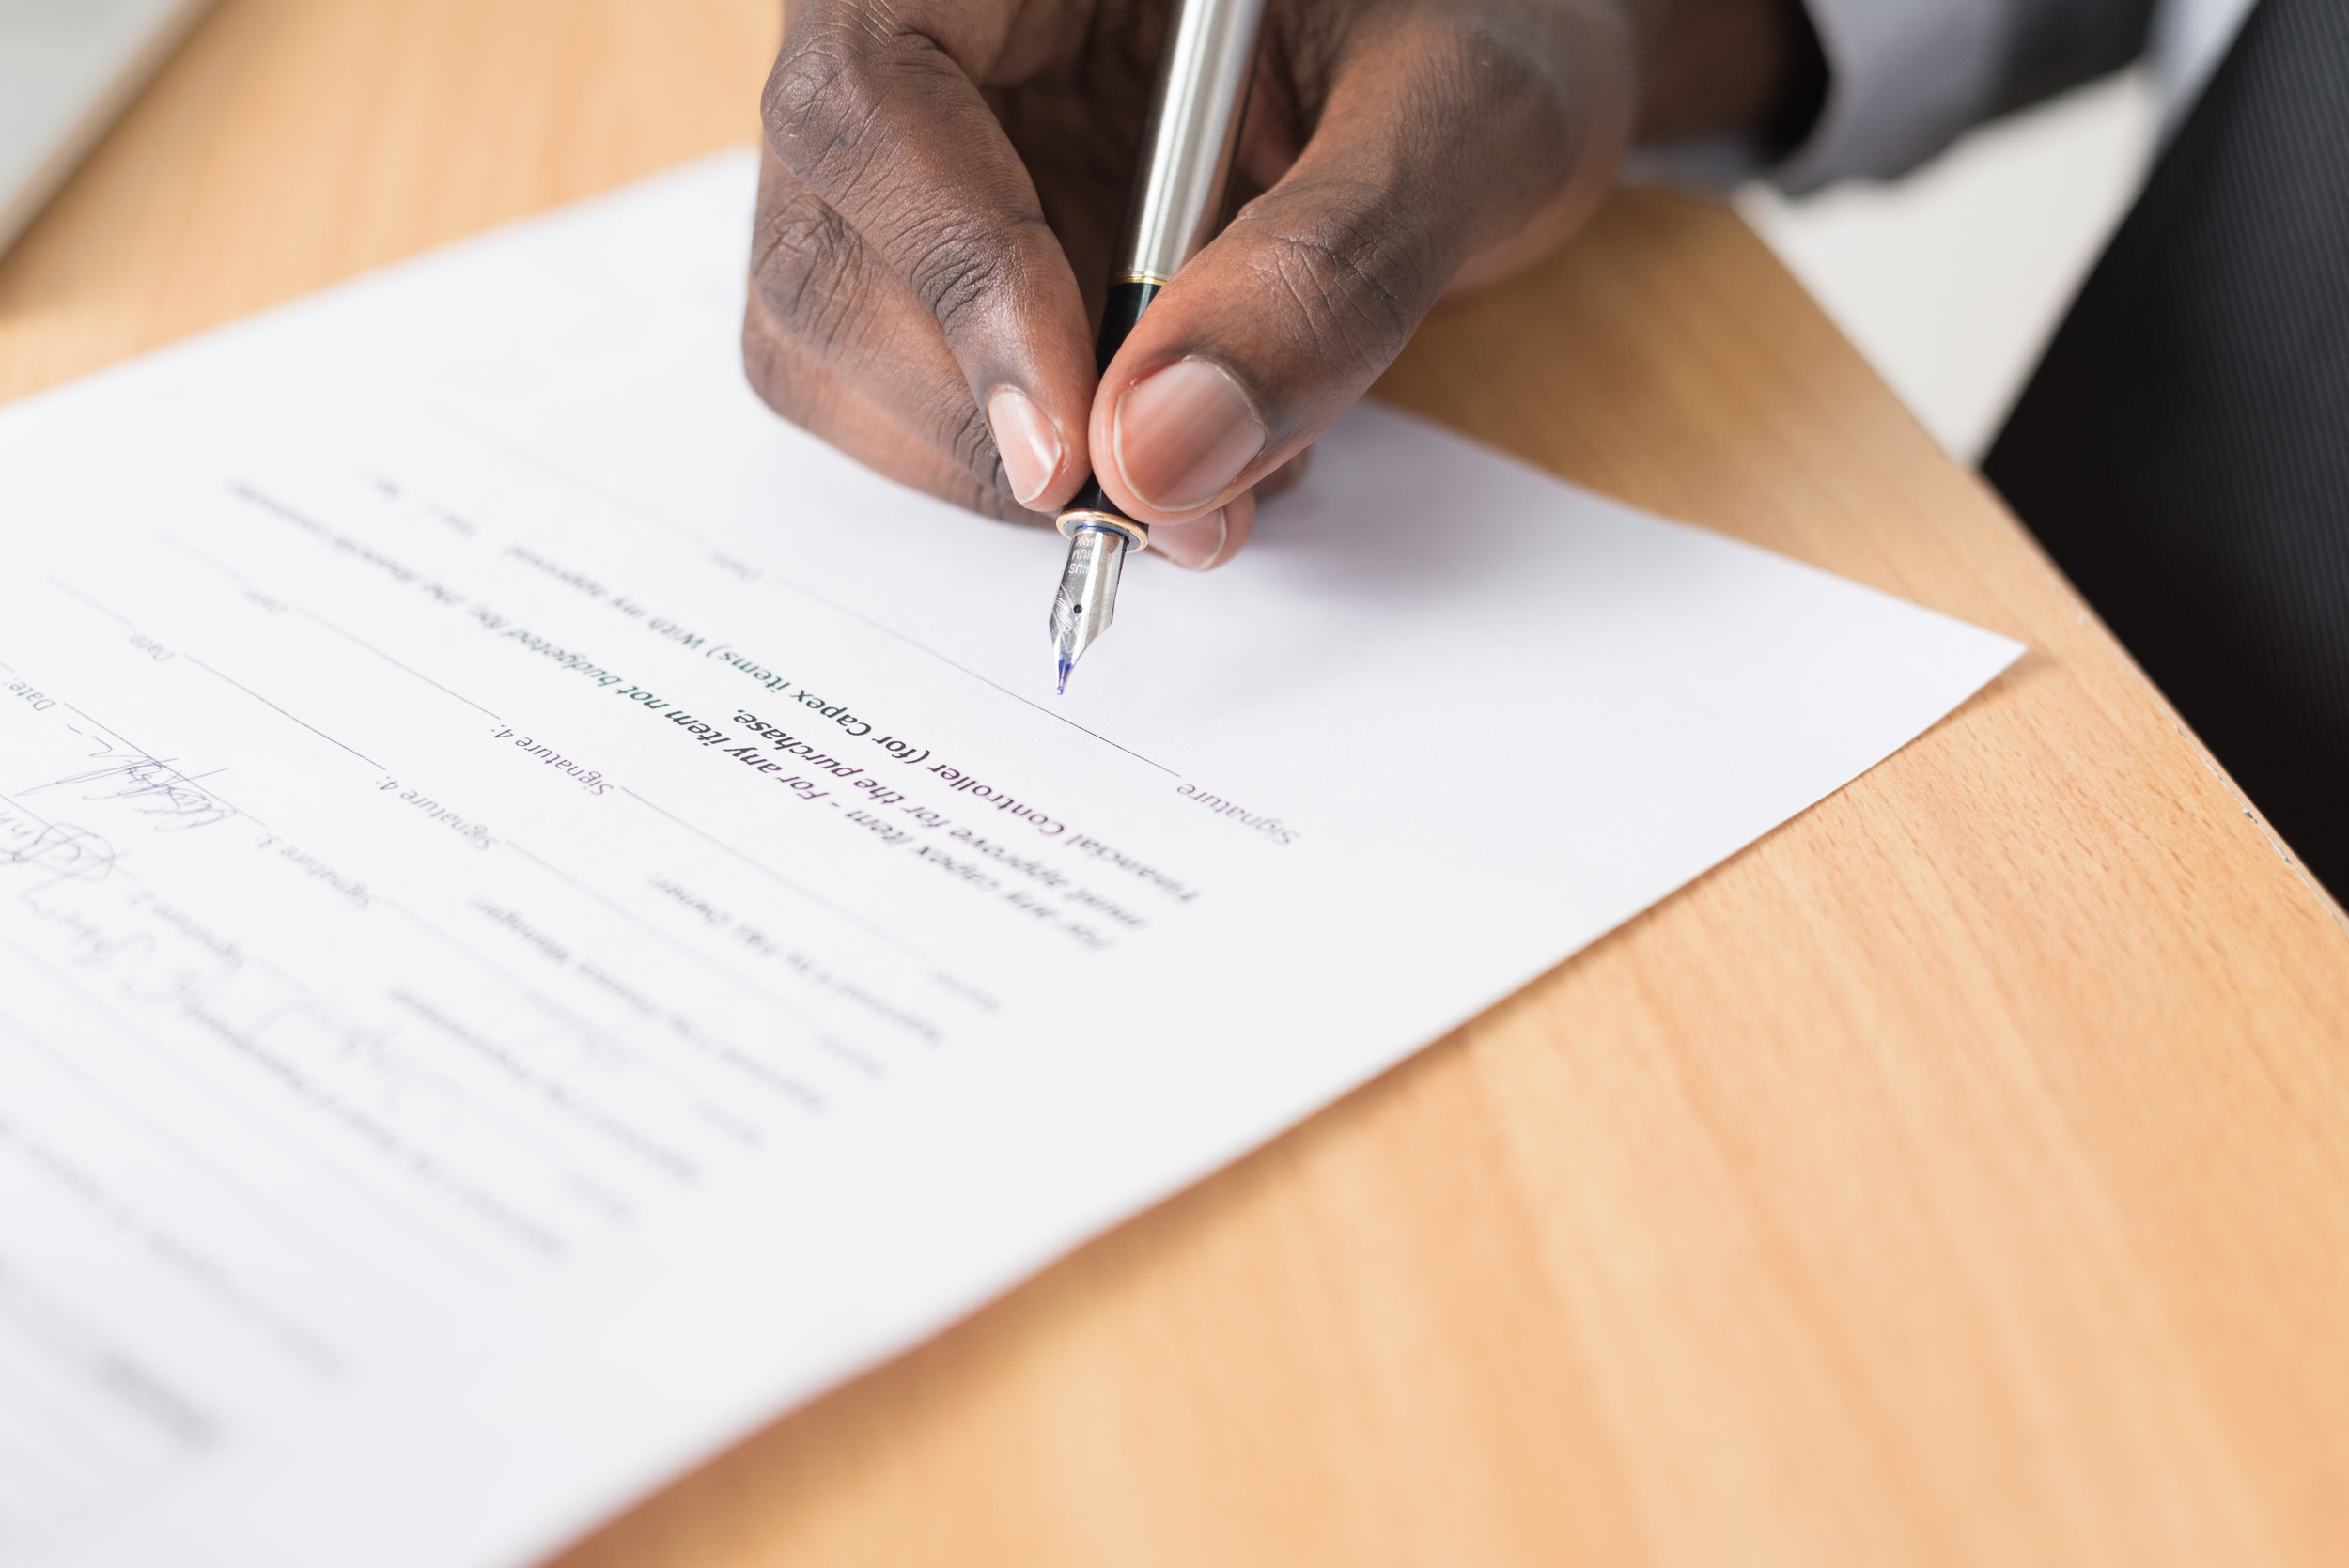 5. Sign your (pending) lease - Congrats, your application is approved! Our leasing team will send a lease your way. Have any questions about the lease? Check out our FAQs here, or contact us (leasing@livehomeroom.com or 816-203-1186) — we are here to help! Once you sign the lease, it will enter into a pending status, and we will include you in the candidate pool for the final selection process (meeting the whole house).